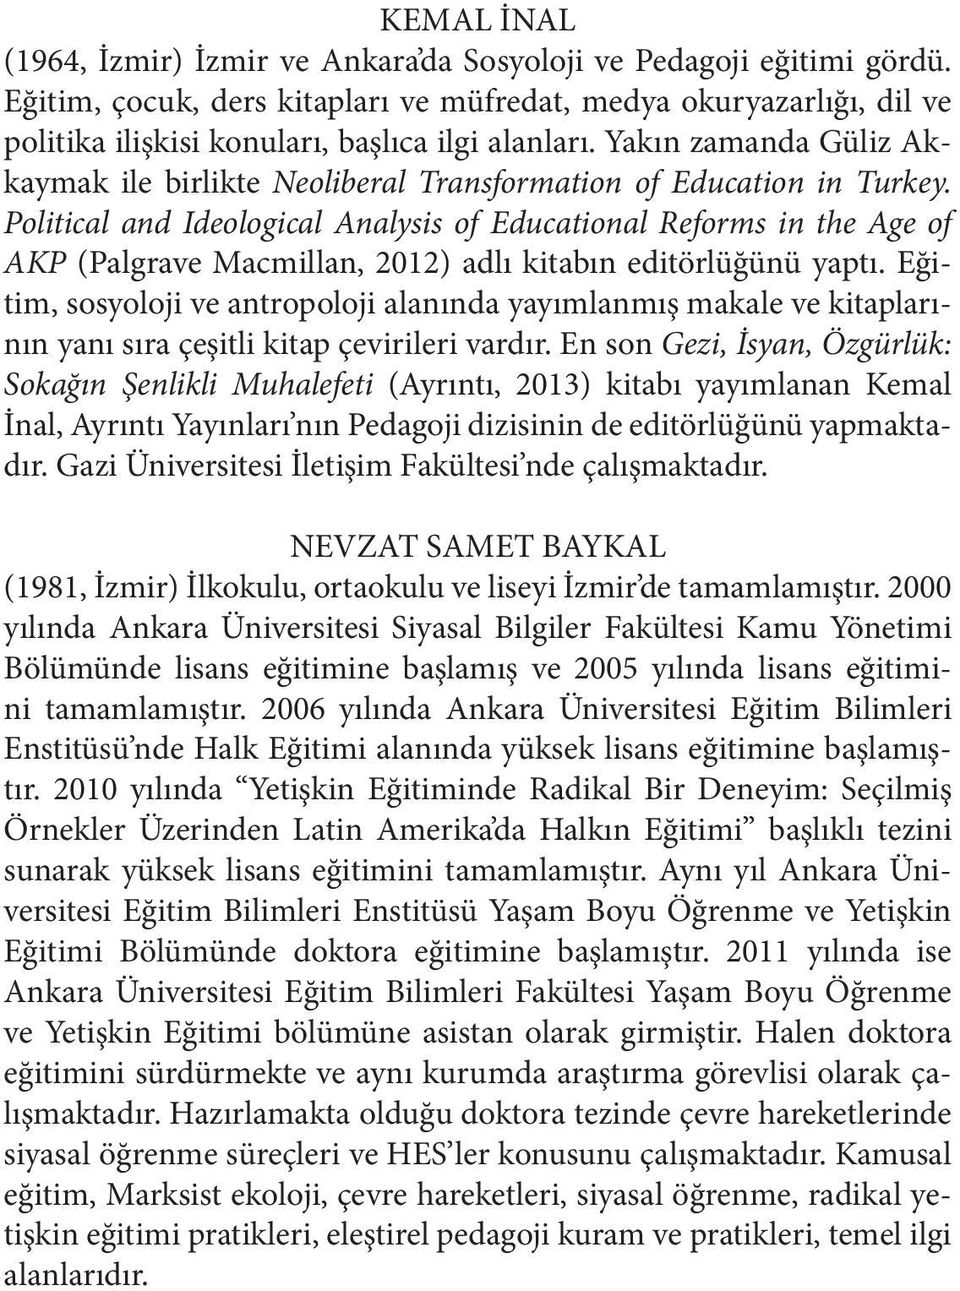 Yakın zamanda Güliz Akkaymak ile birlikte Neoliberal Transformation of Education in Turkey.